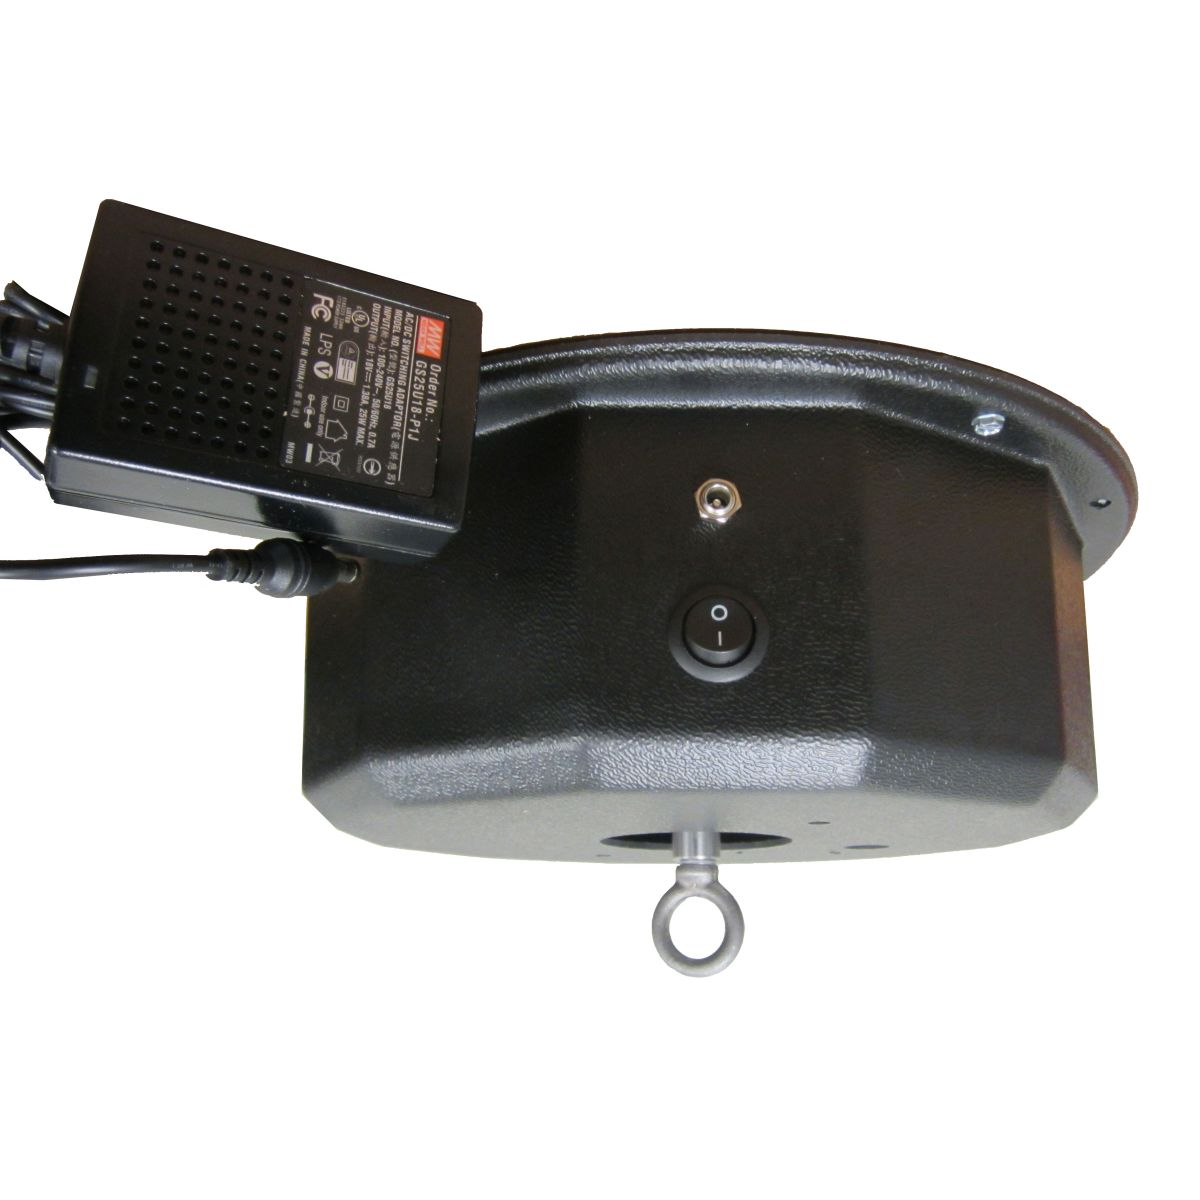 Motorized Turntable - 200 Pound Cap. - Ceiling Unit